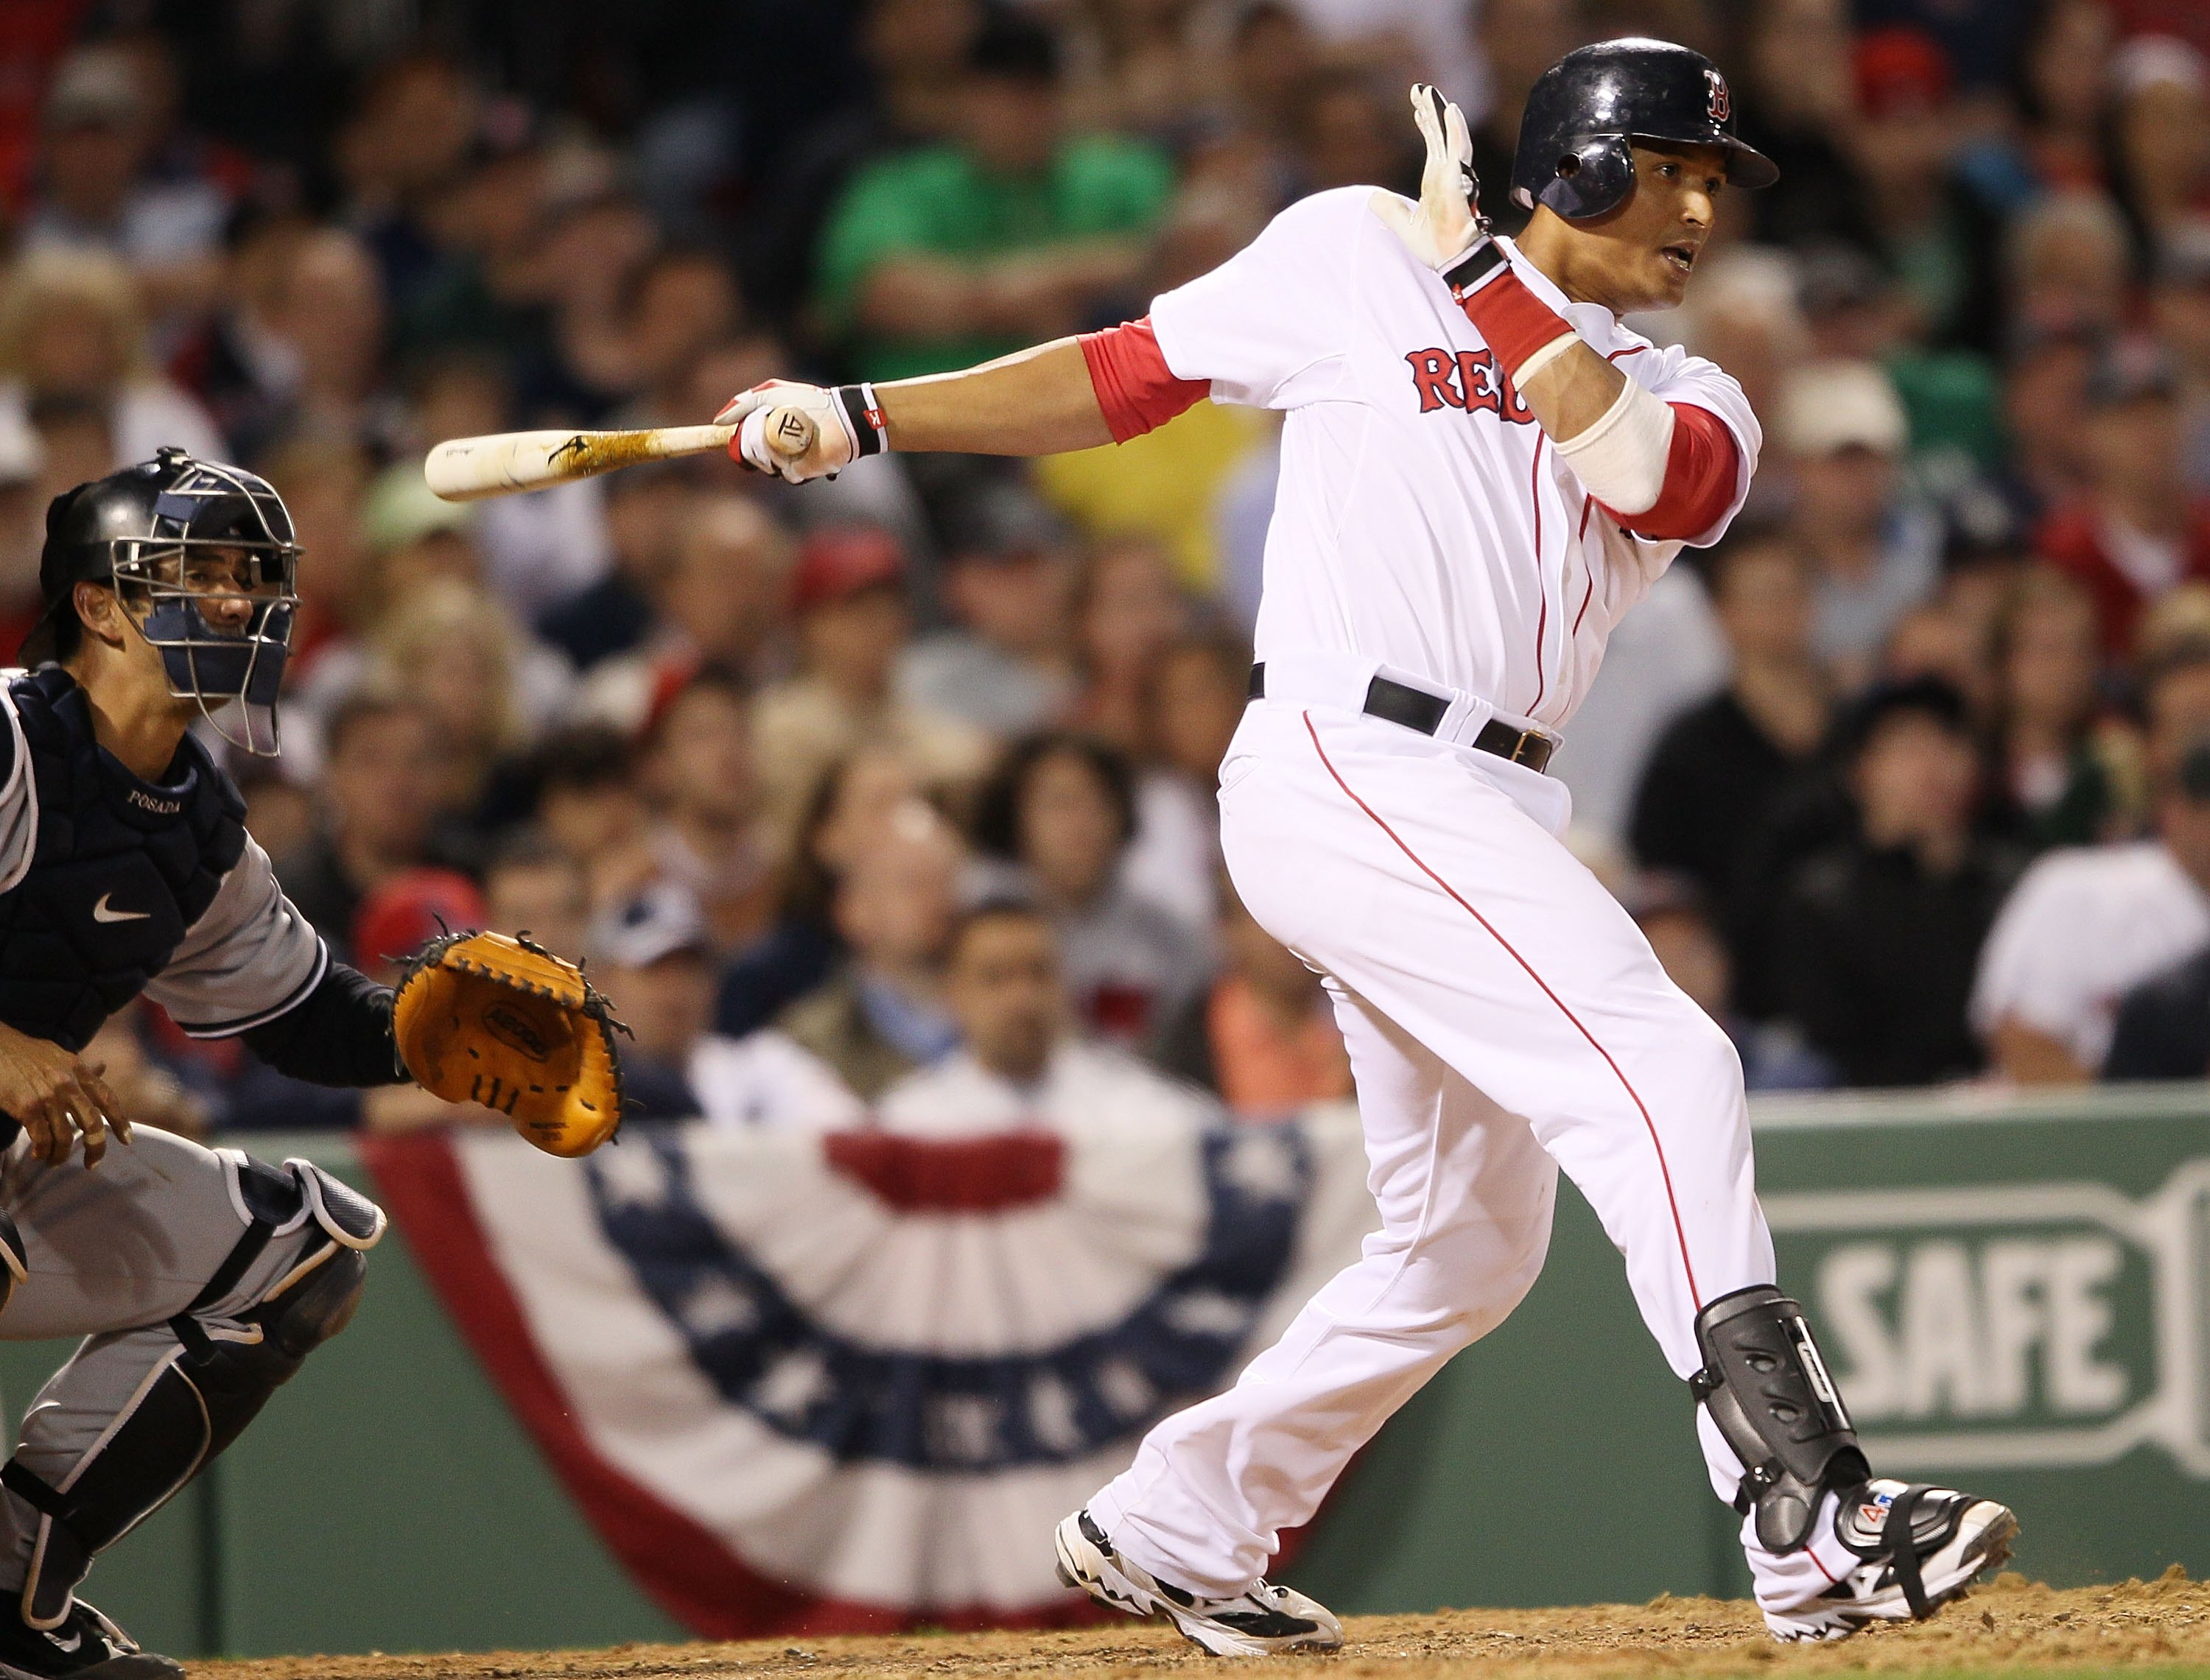 BOSTON - APRIL 04:  Victor Martinez #41 of the Boston Red Sox takes a swing as Jorge Posada #20 of the New York Yankees defends on April 4, 2010 during Opening Night at Fenway Park in Boston, Massachusetts.  (Photo by Elsa/Getty Images)